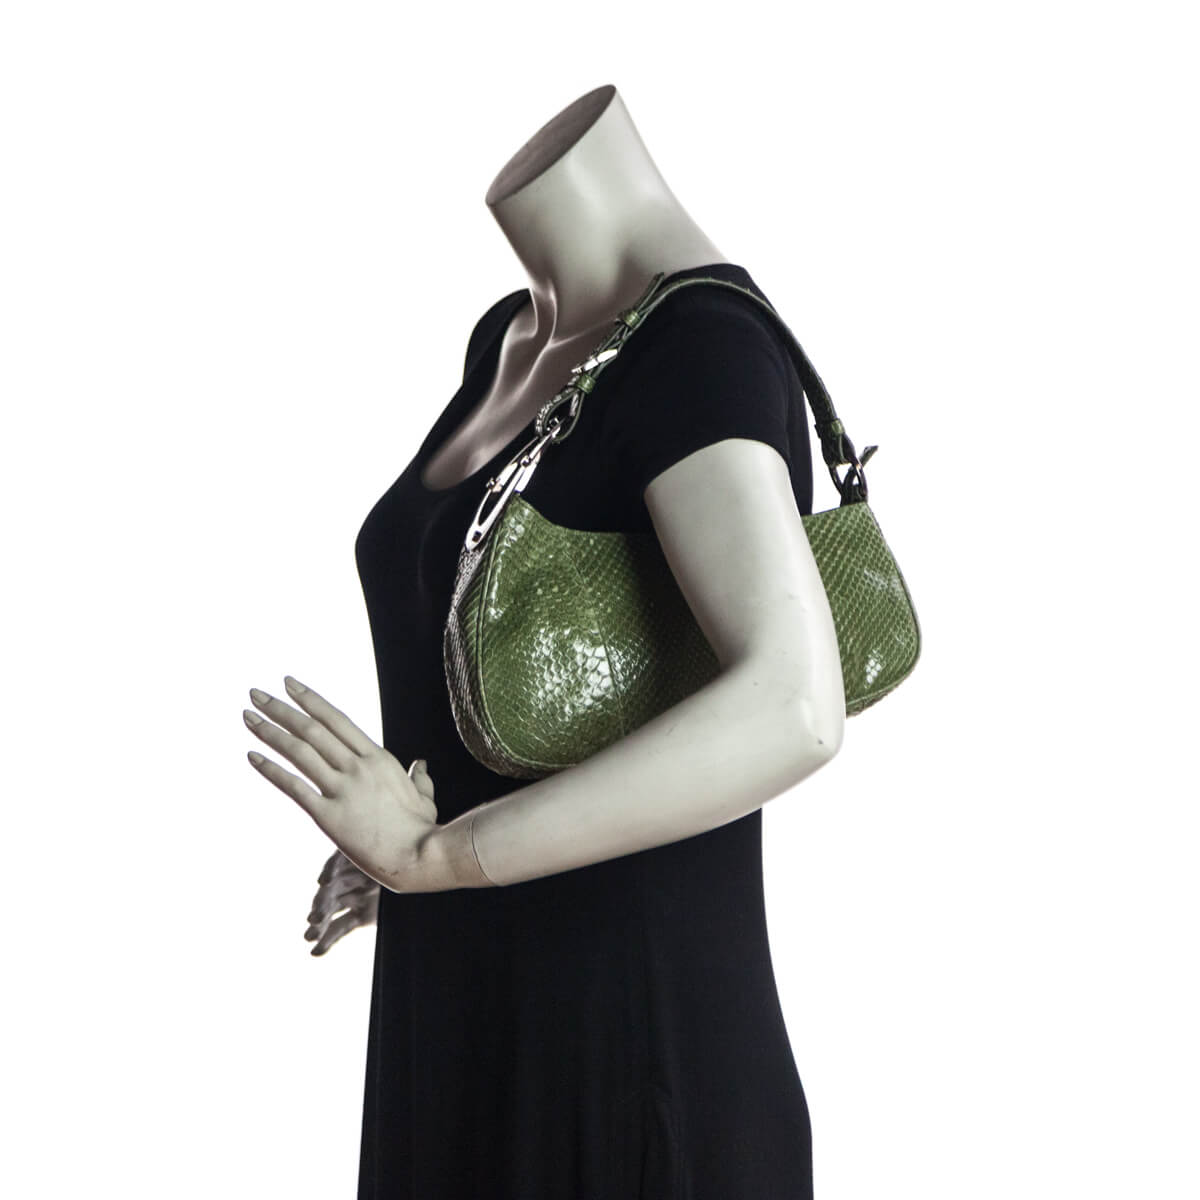 ... Sergio Rossi Green Snakeskin Shoulder Bag - LOVE that BAG - Preowned  Authentic Designer Handbags b7632e8a716b7